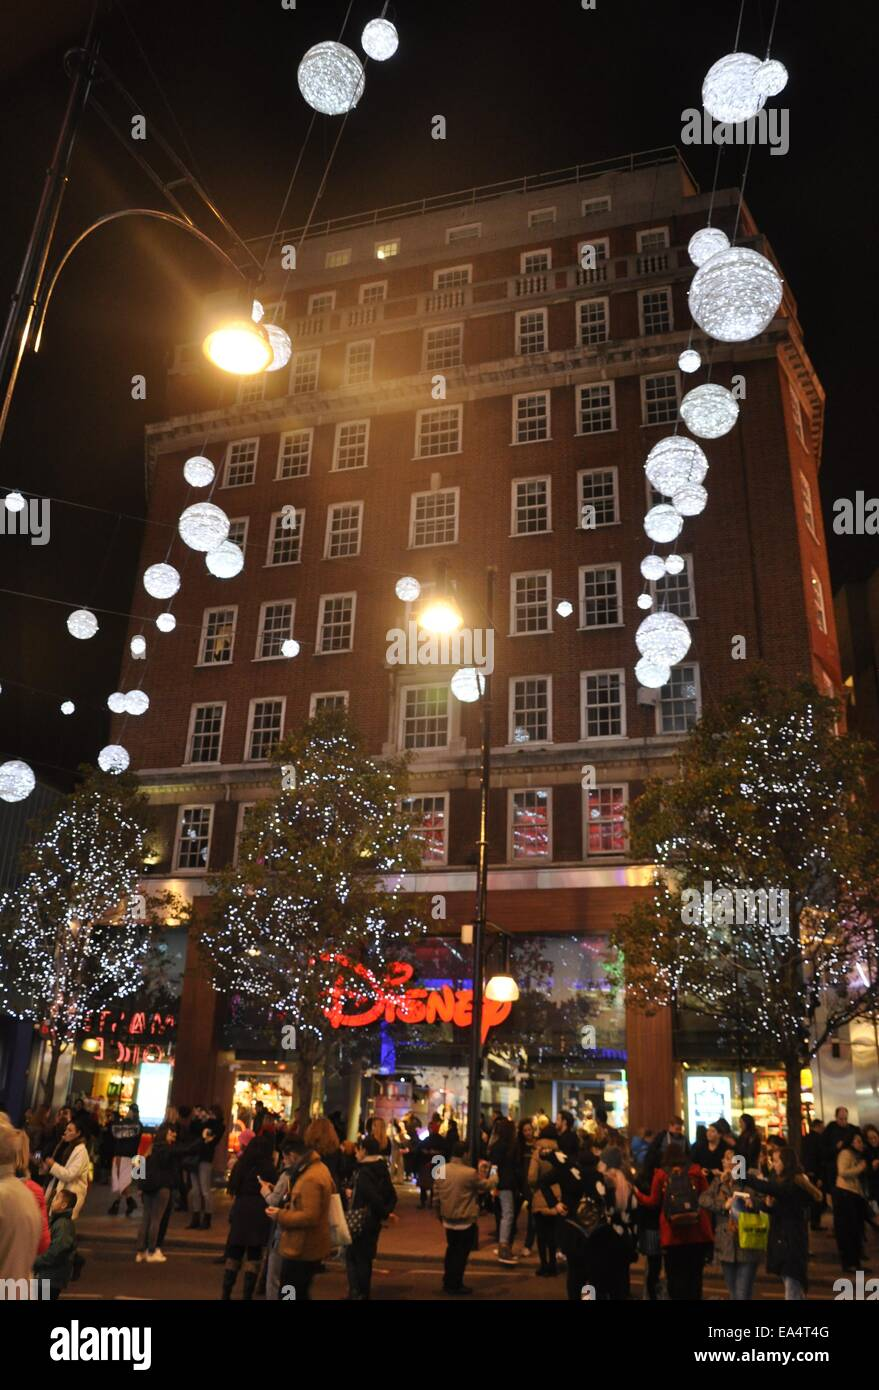 shoppers outside oxford street disney store with christmas lights at night time london - Christmas Light Store